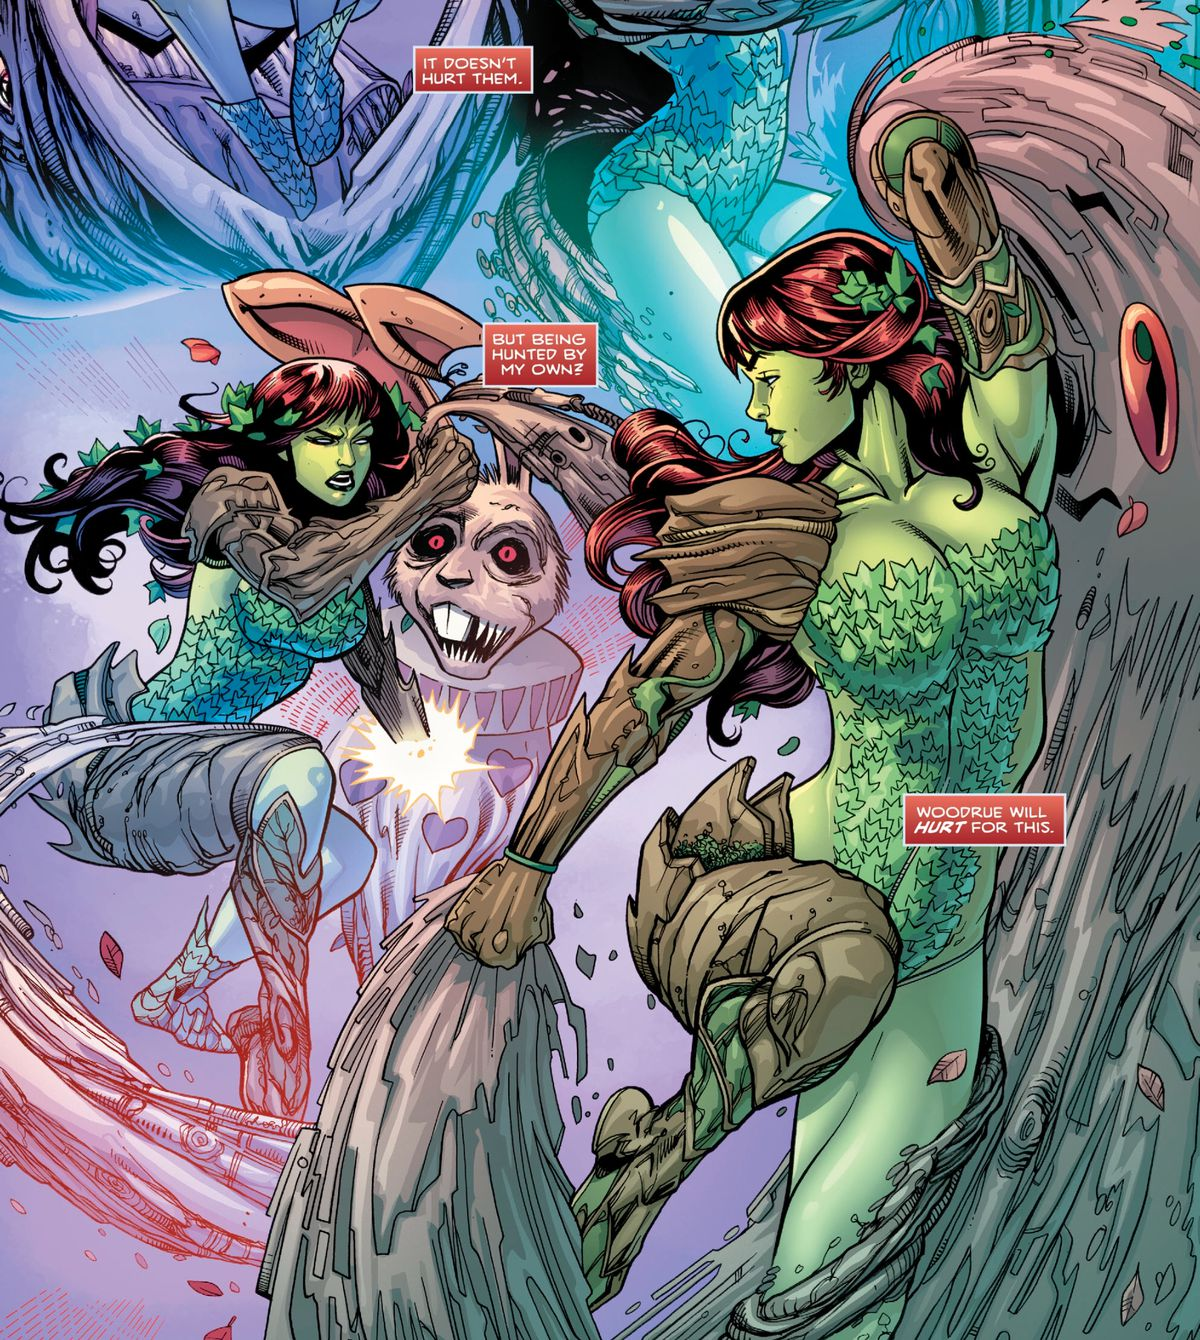 Poison Ivy destroys some plant soldiers in an outift made of ivy leaves and plated wood armor, in Harley Quinn and Poison Ivy #3, DC Comics (2019).